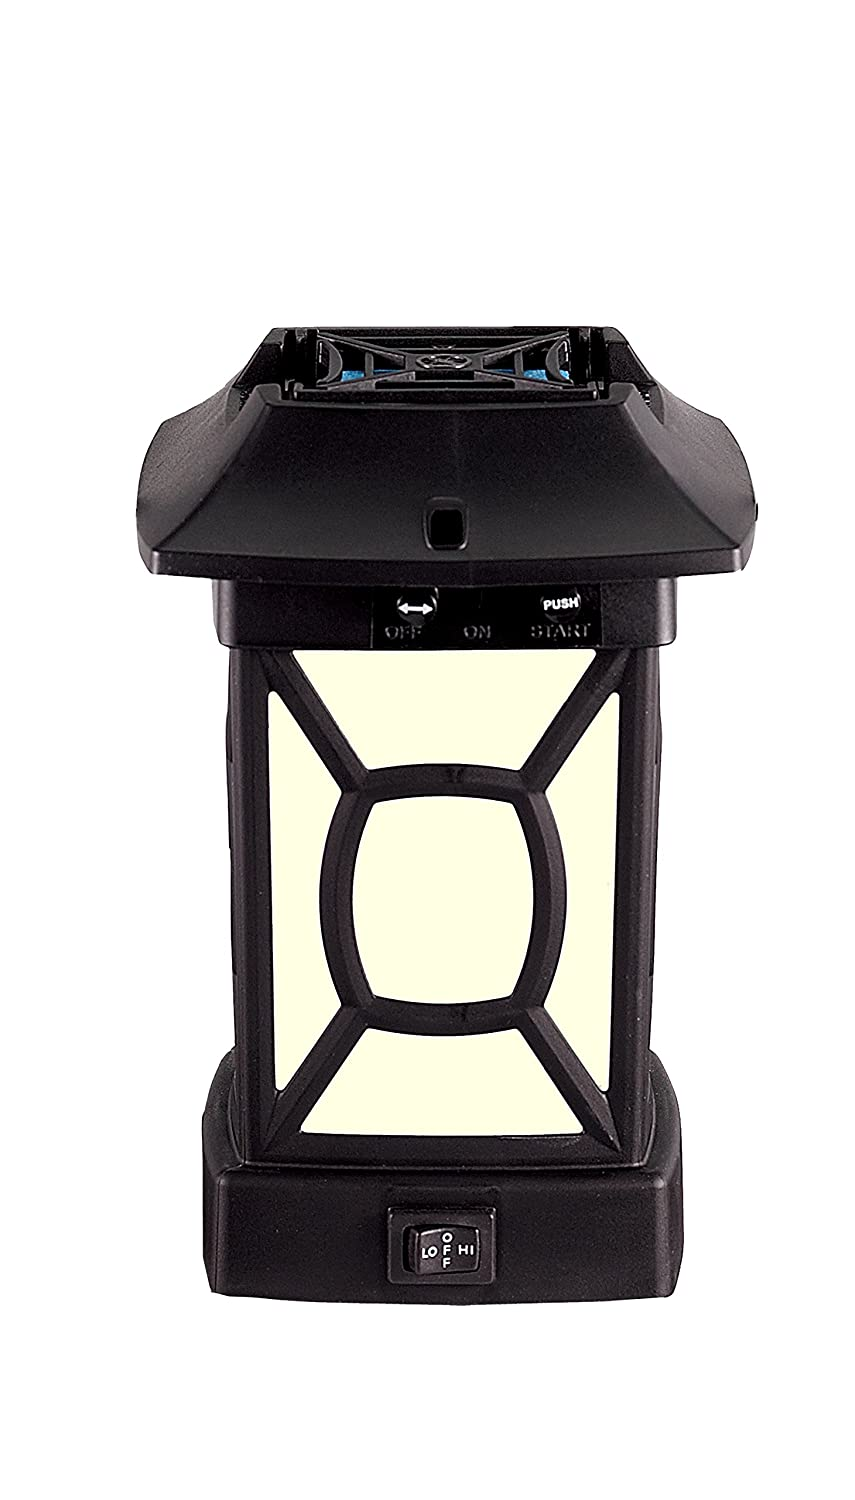 Thermacell Mr 9 W Patio Shield Cambridge Mosquito Repeller Plus Lantern by Thermacell